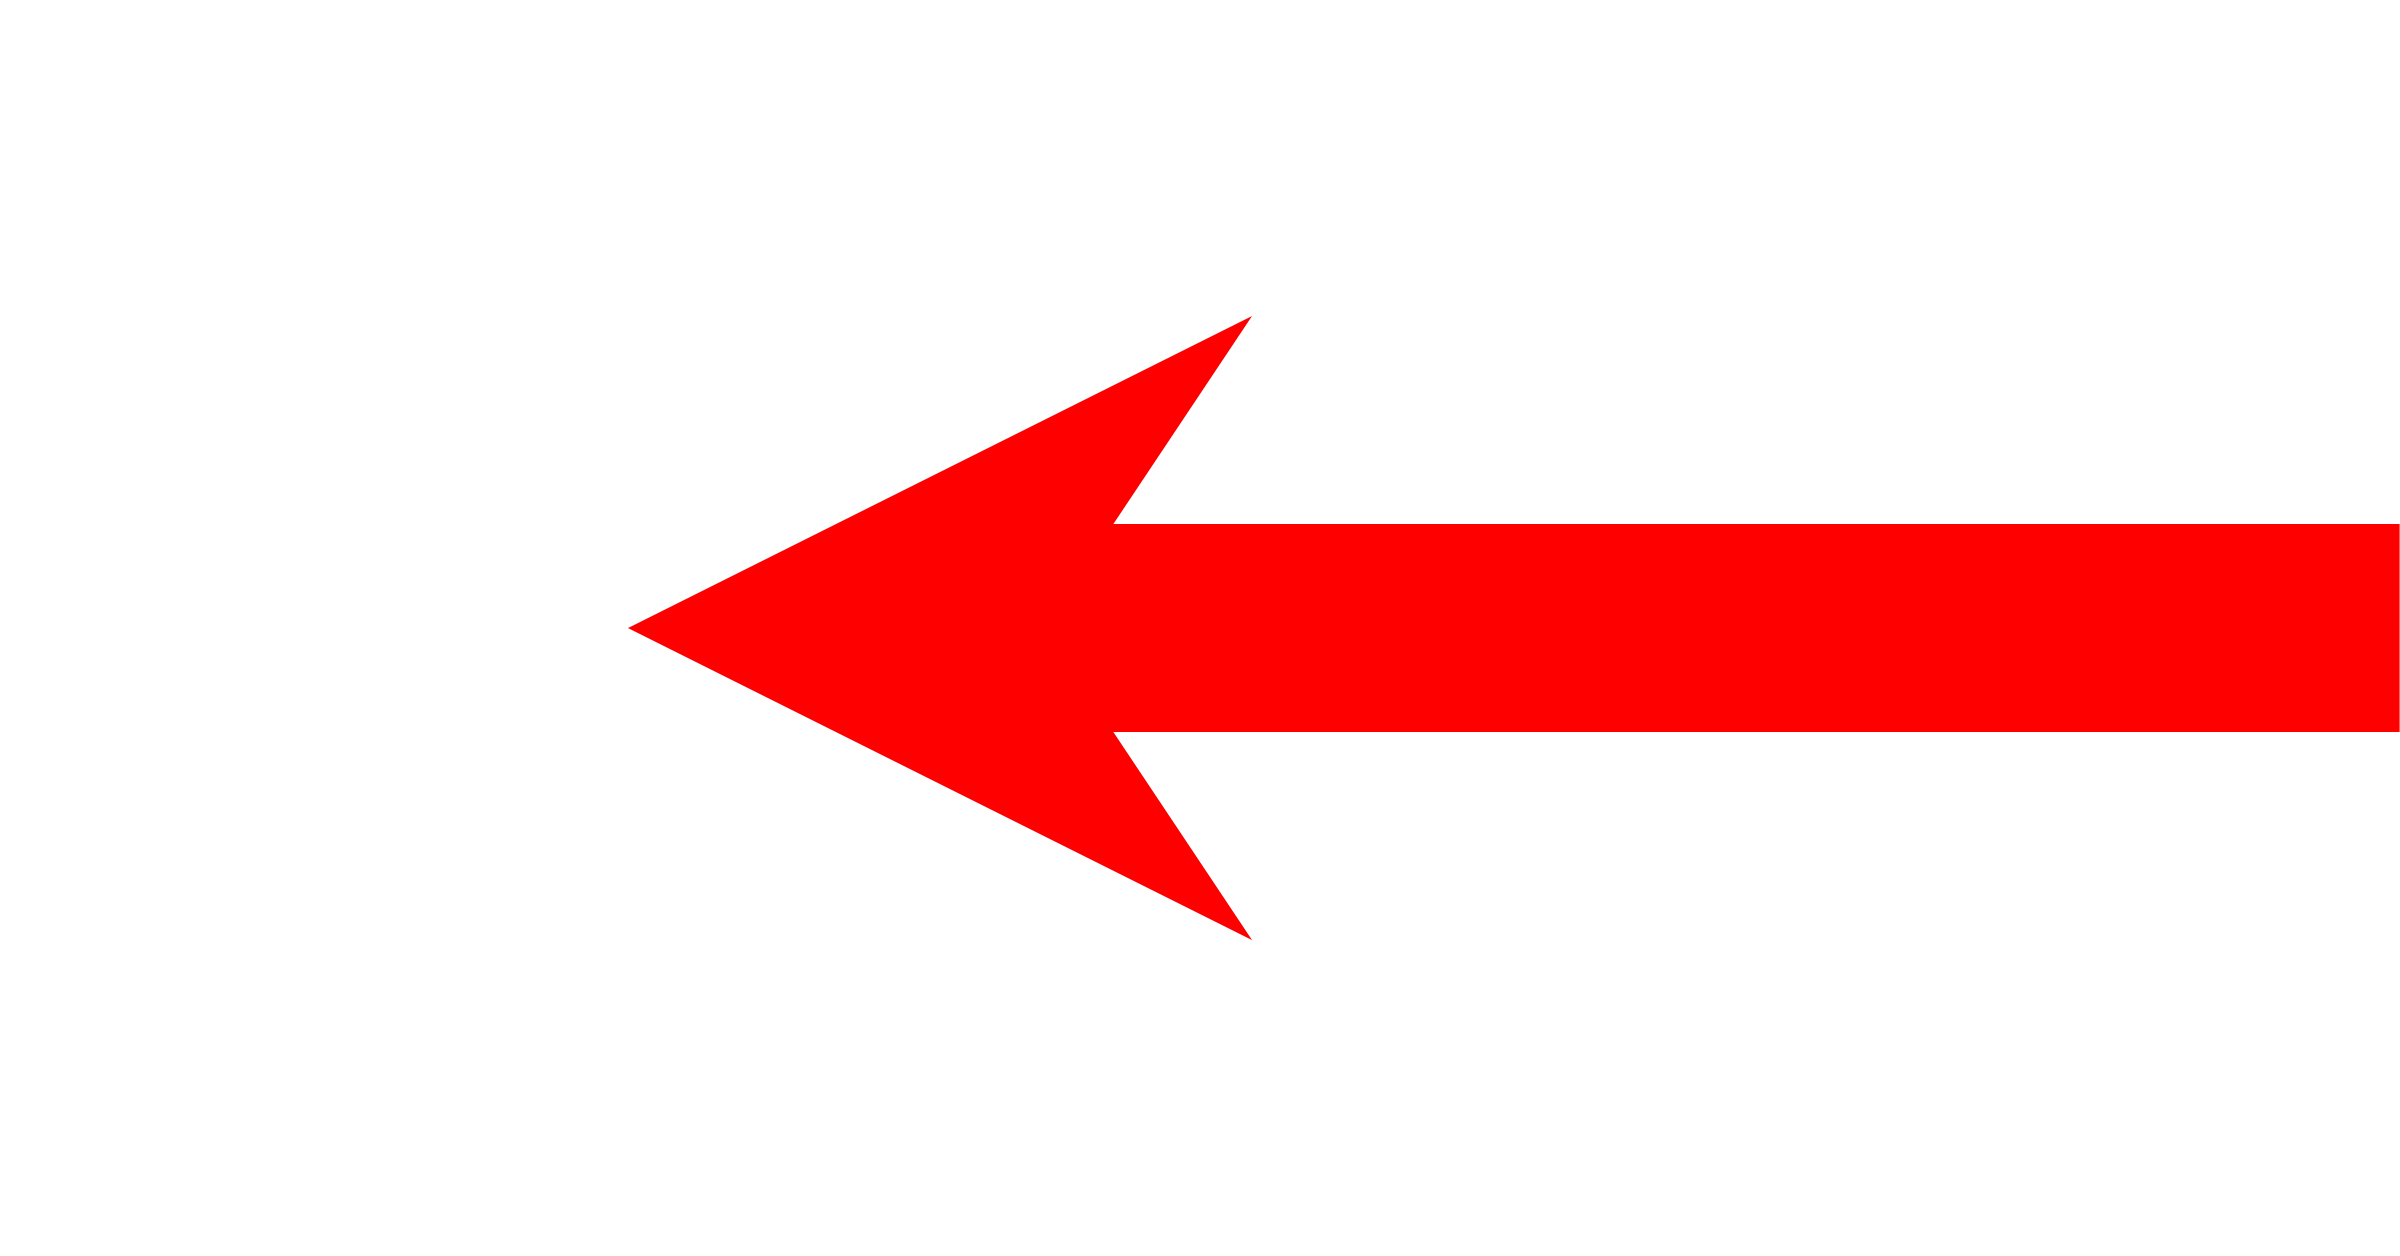 Arrow images png. Red transparent pluspng fileshort